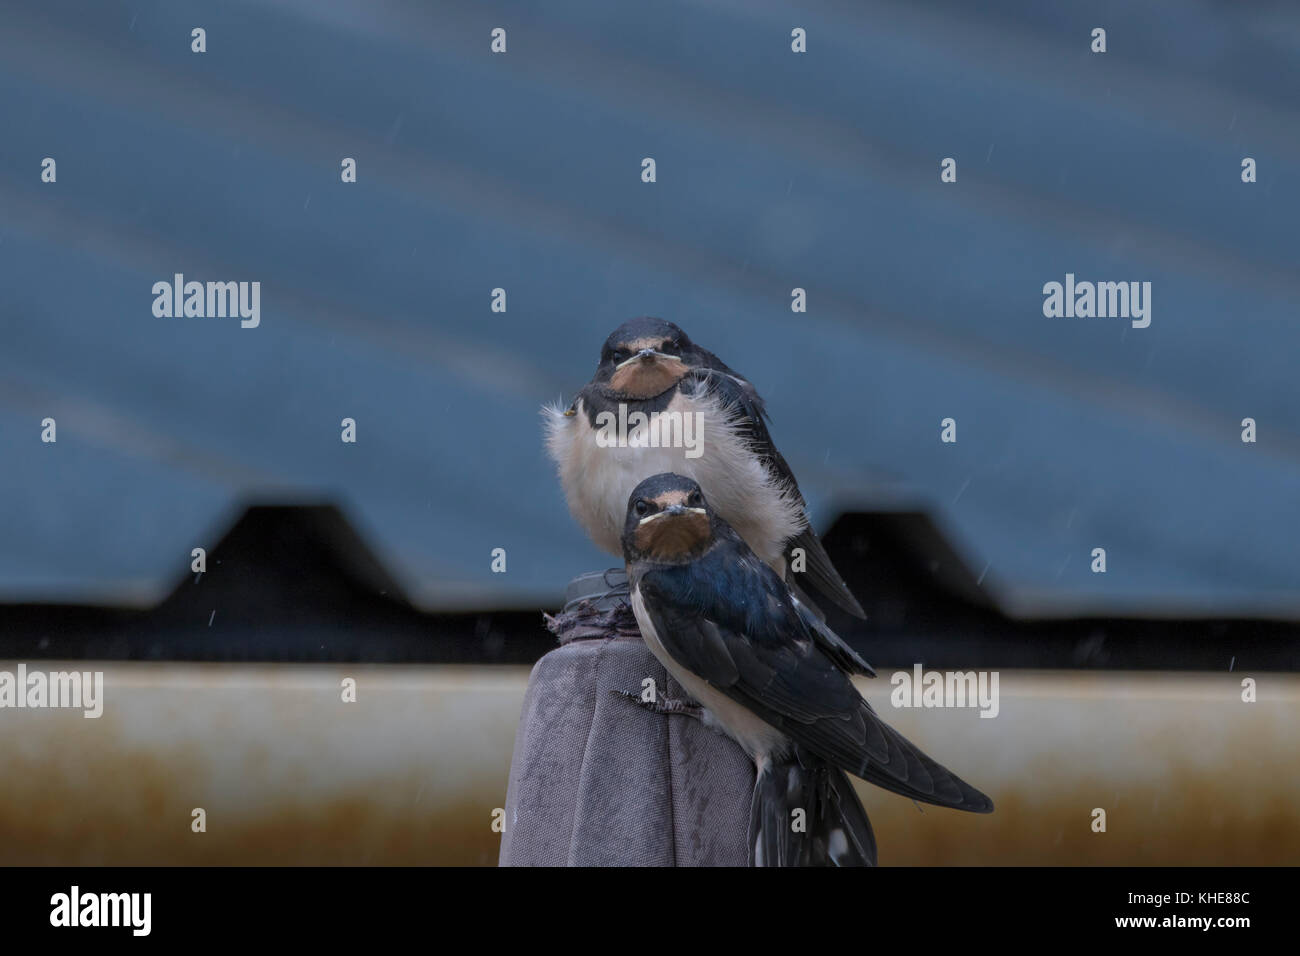 swallow bird, Hirundinidae, flying eye level towards camera plus young birds perched in spey bay Scotland. - Stock Image